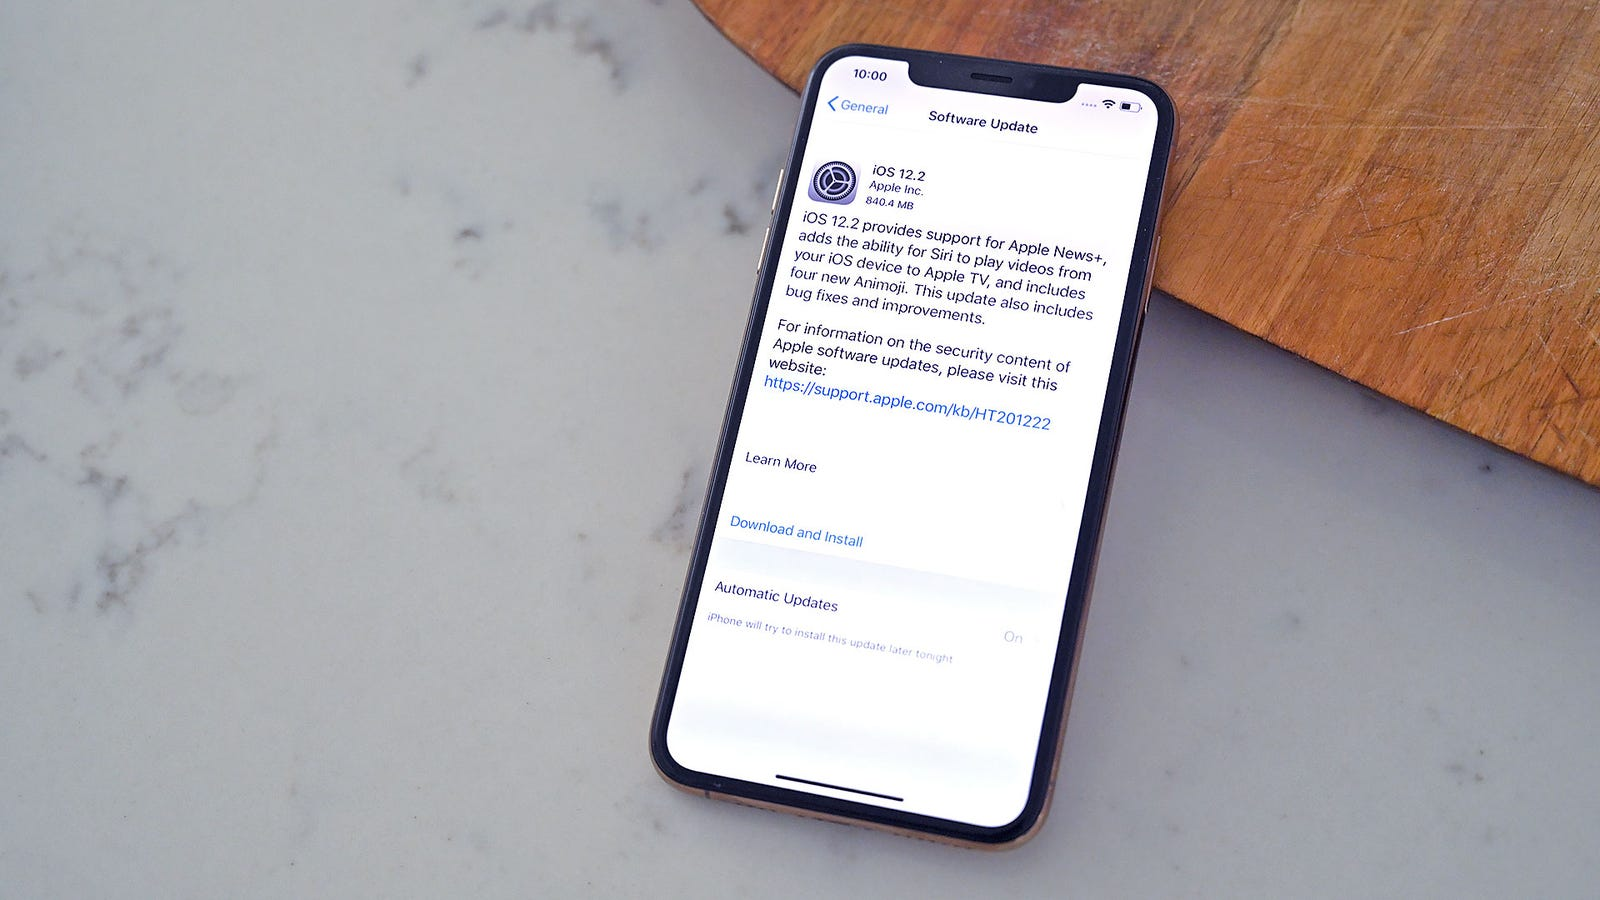 QnA VBage You Need to Update to iOS 12.2 Right Now to Fix More Than 50 Security Holes